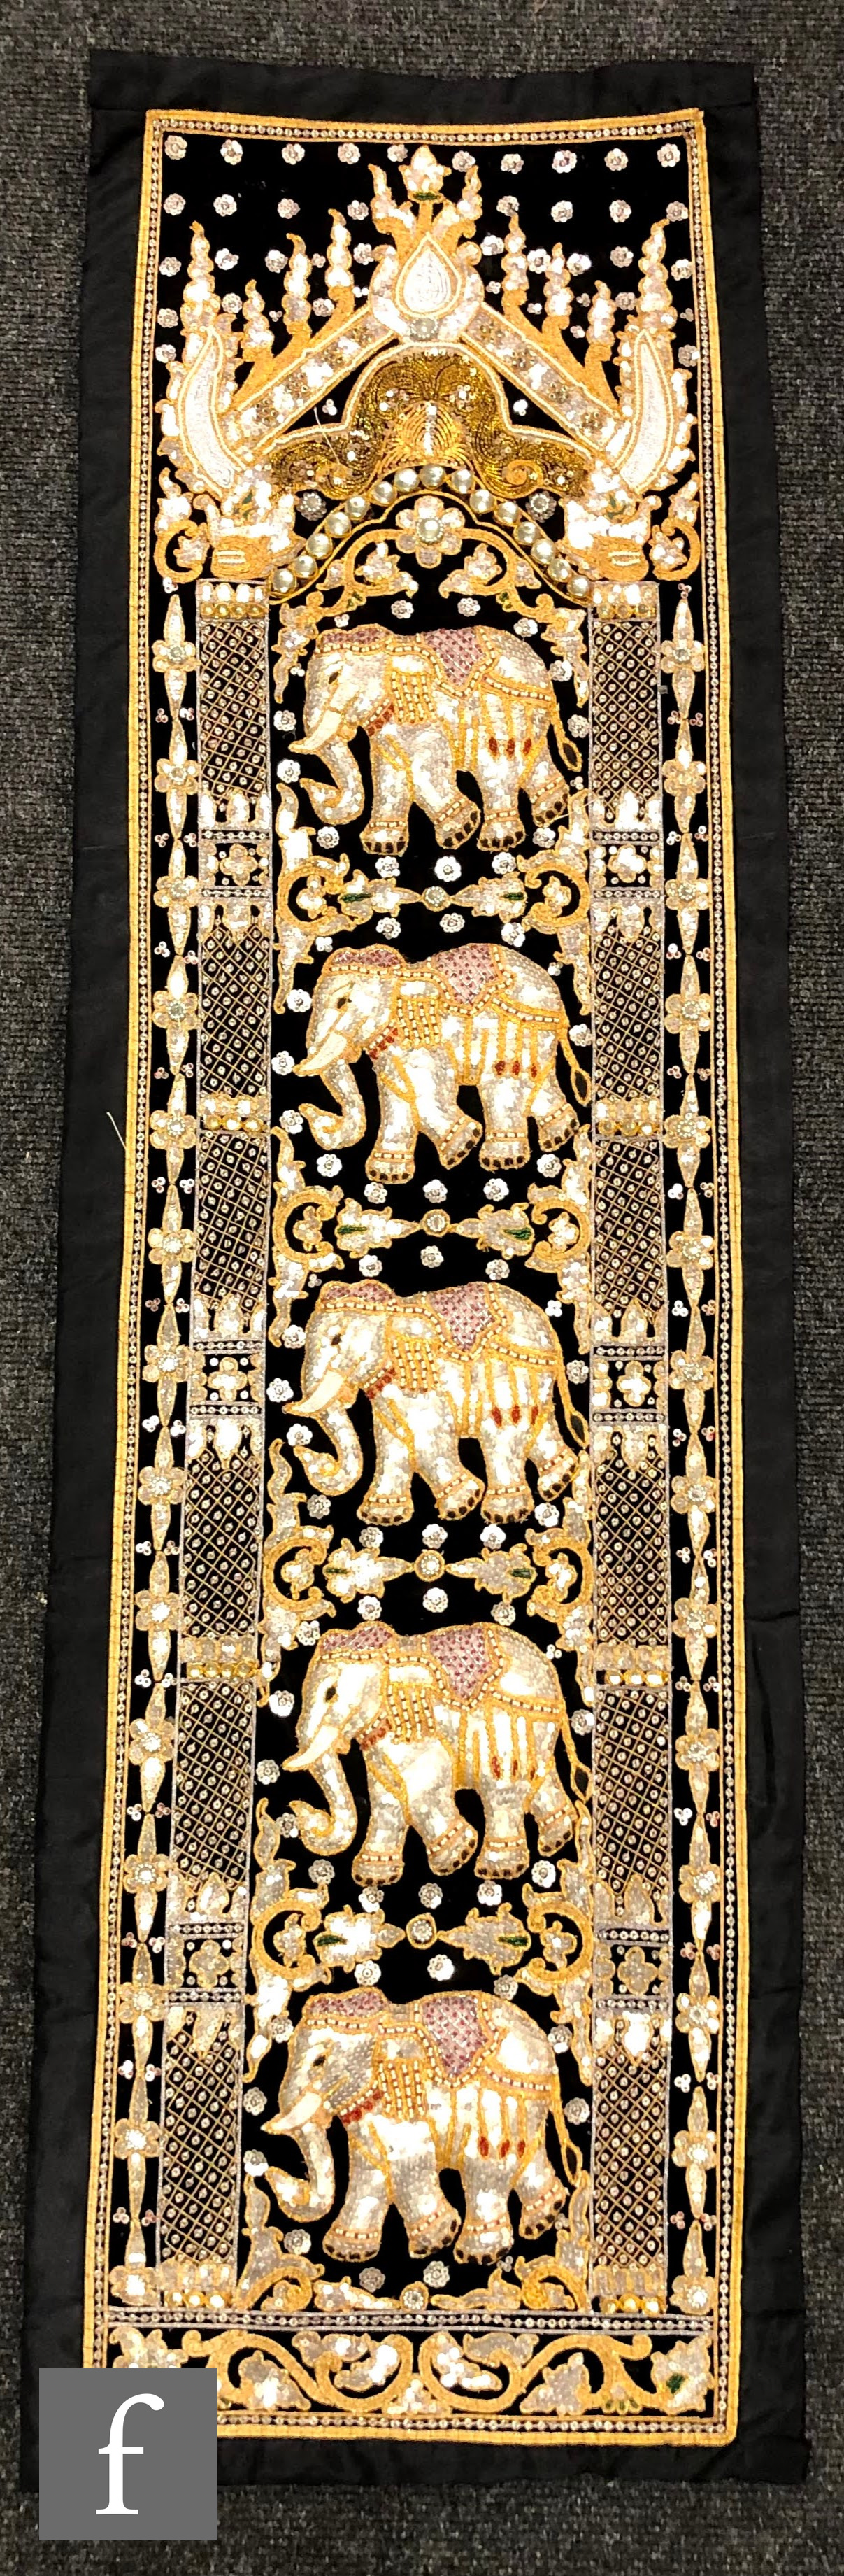 A South East Asian wall hanging on black cloth embroidered with sequins and gilt thread, depicting